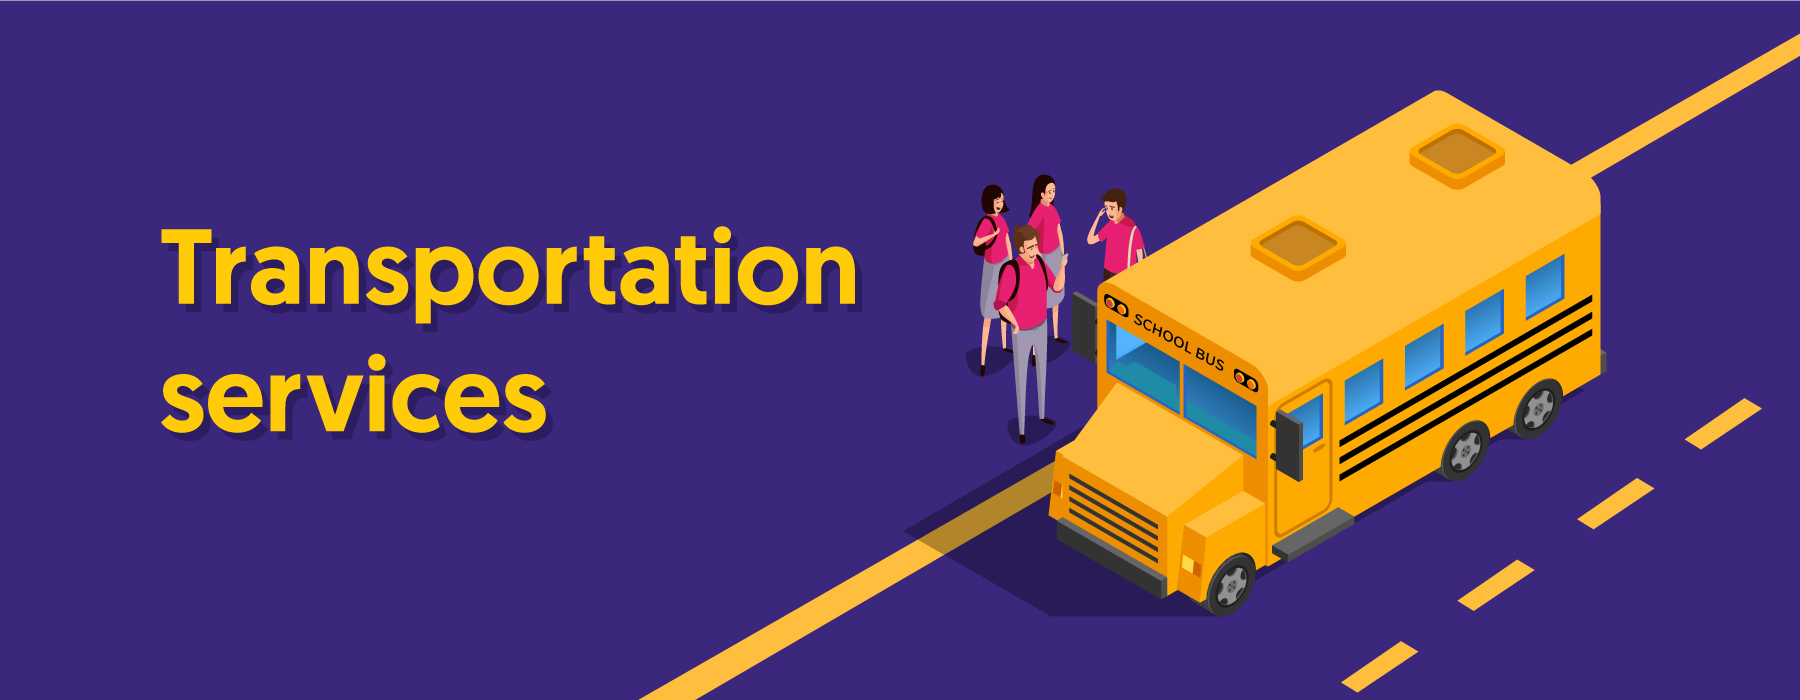 2. Transportation web banner